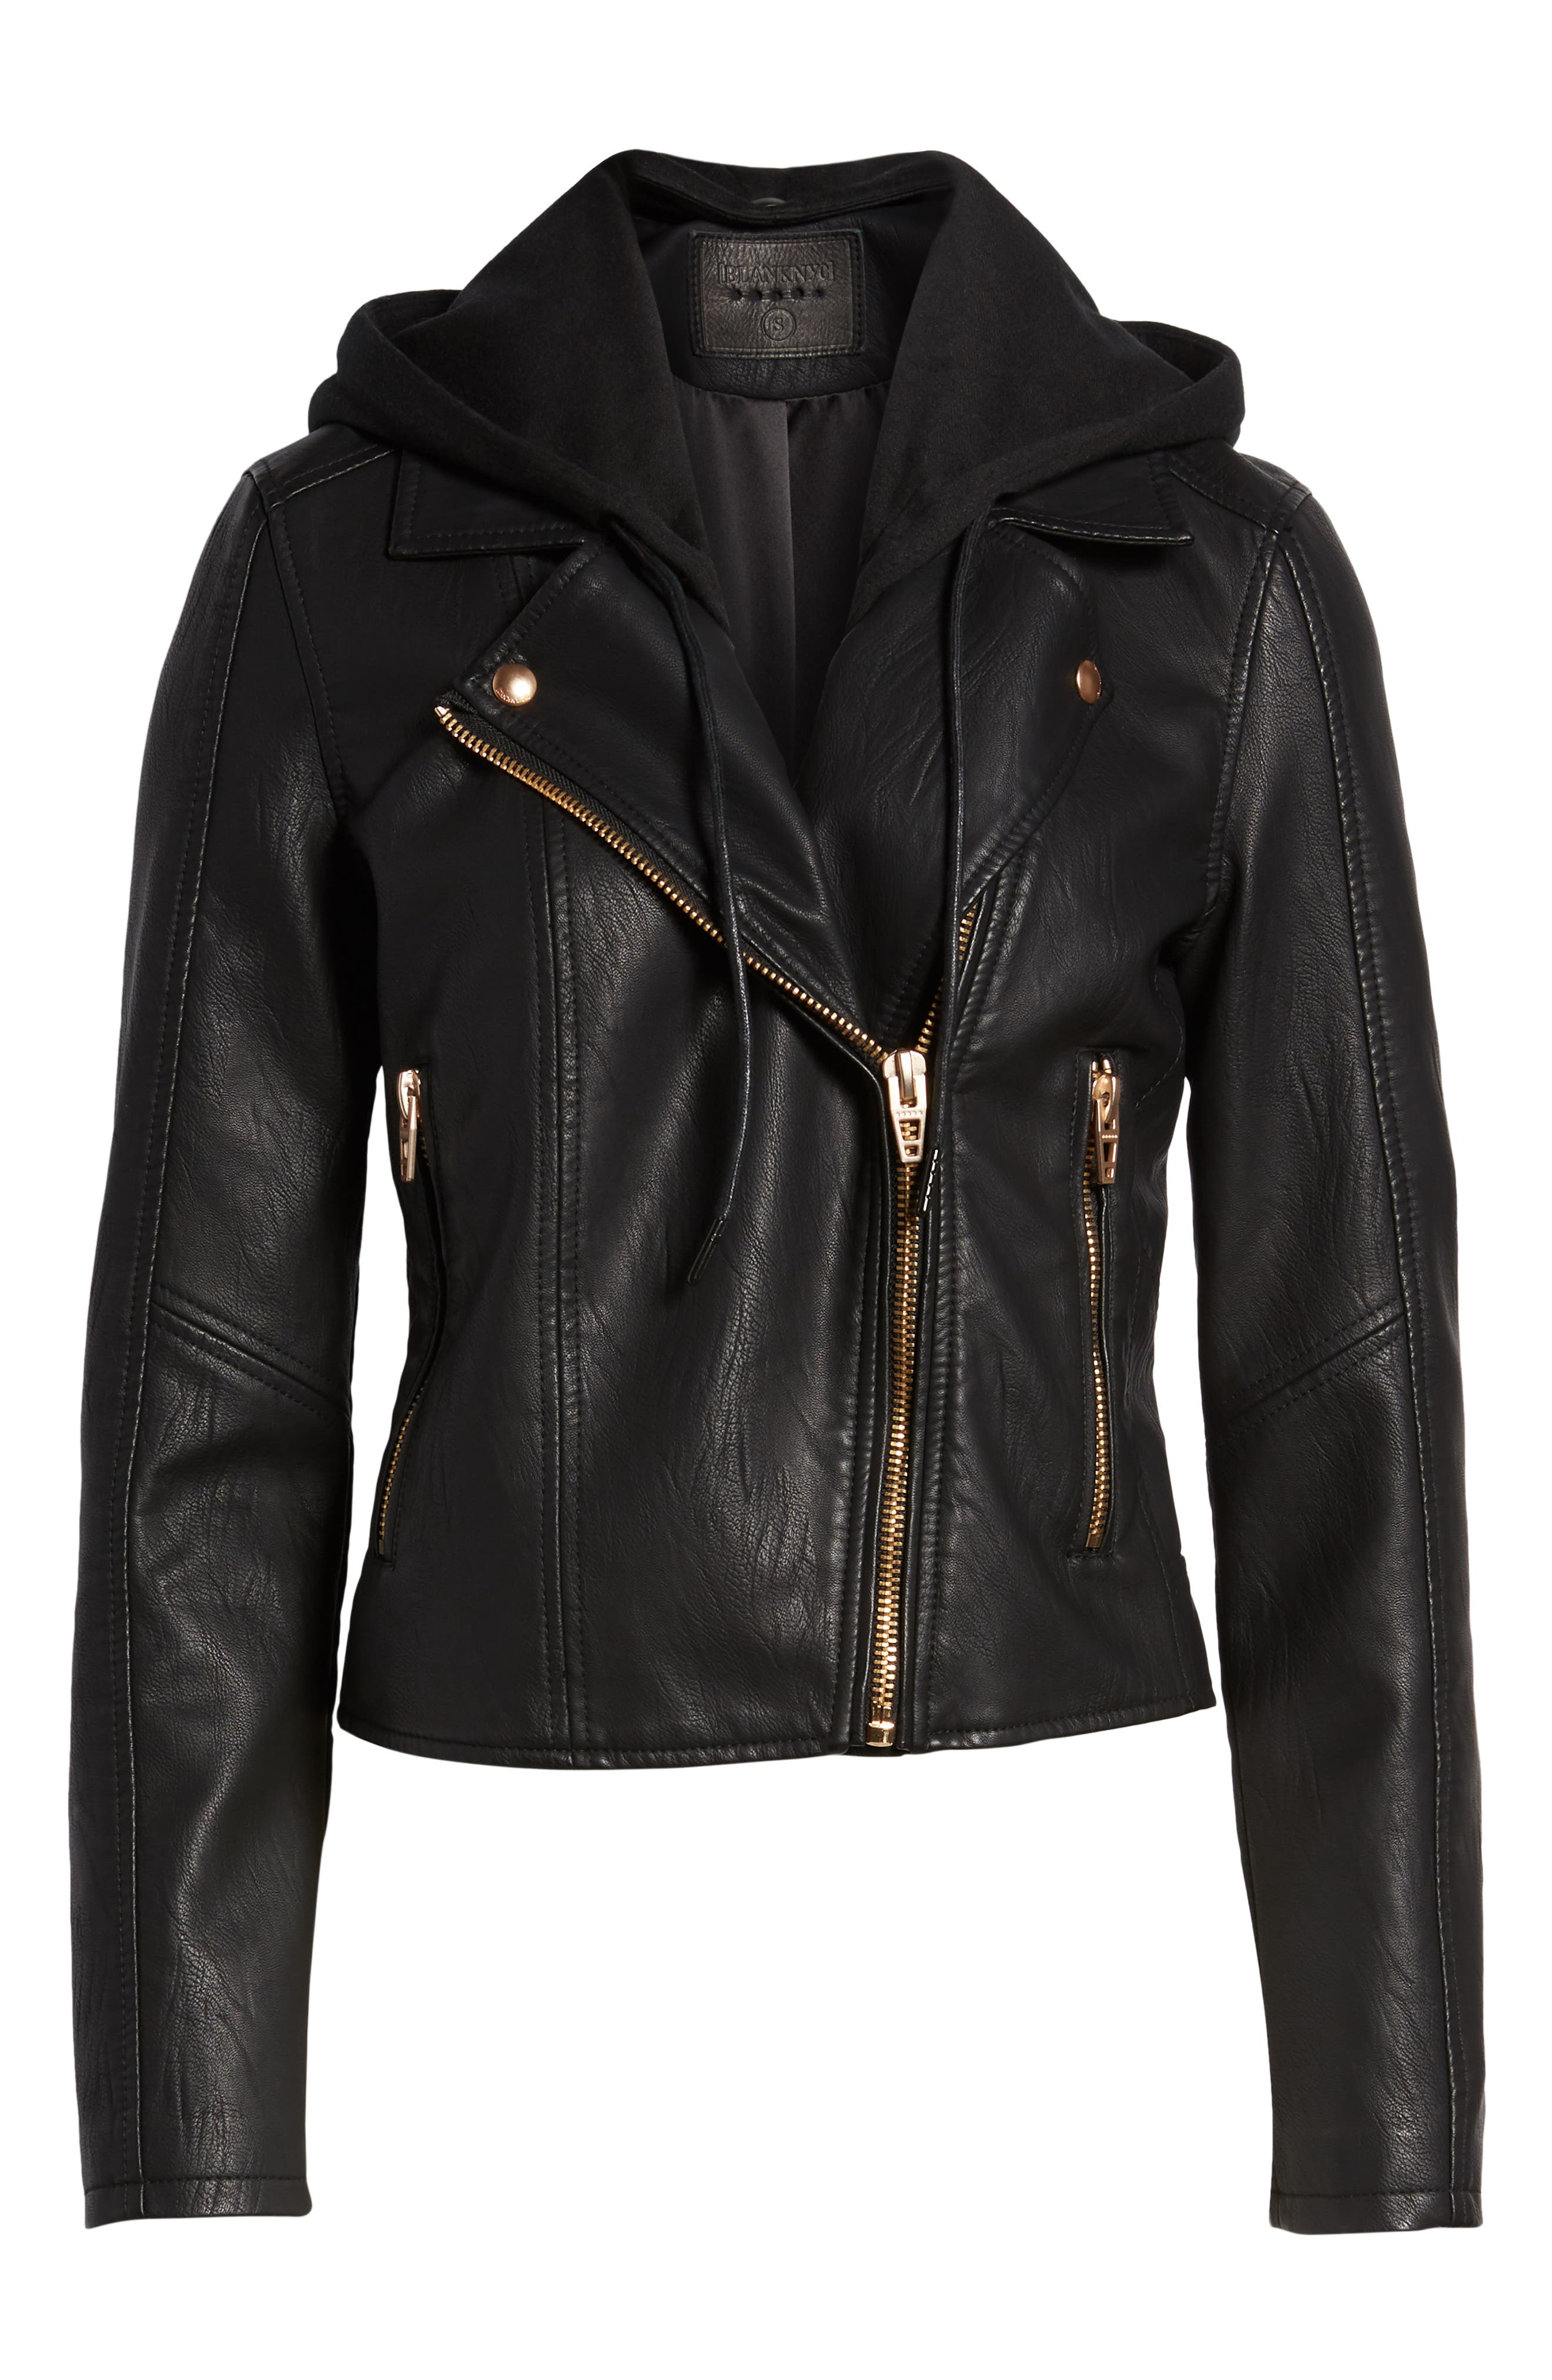 BLANKNYC, Meant to Be Moto Jacket with Removable Hood, Alternate thumbnail 6, color, BLACK